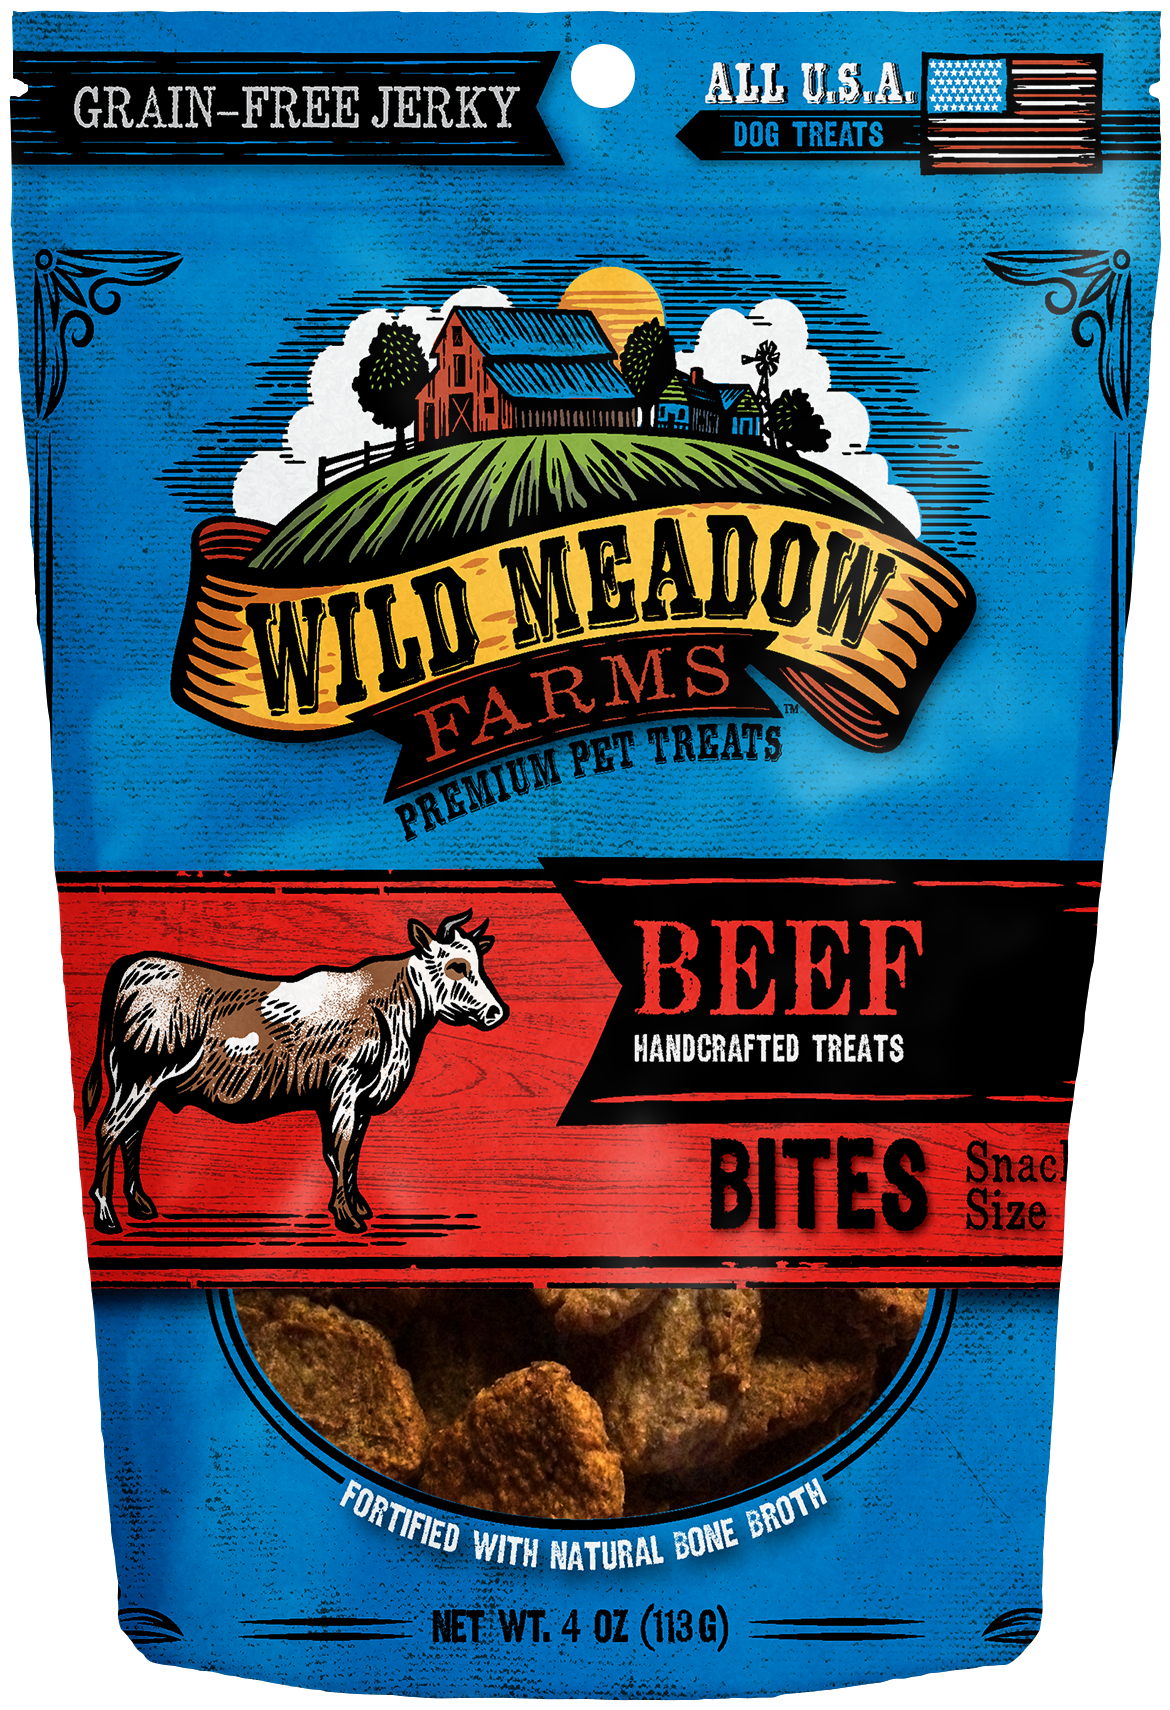 Beef Bites - USA Made Soft Jerky Dog Treats 4oz by Wild Meadow Farms